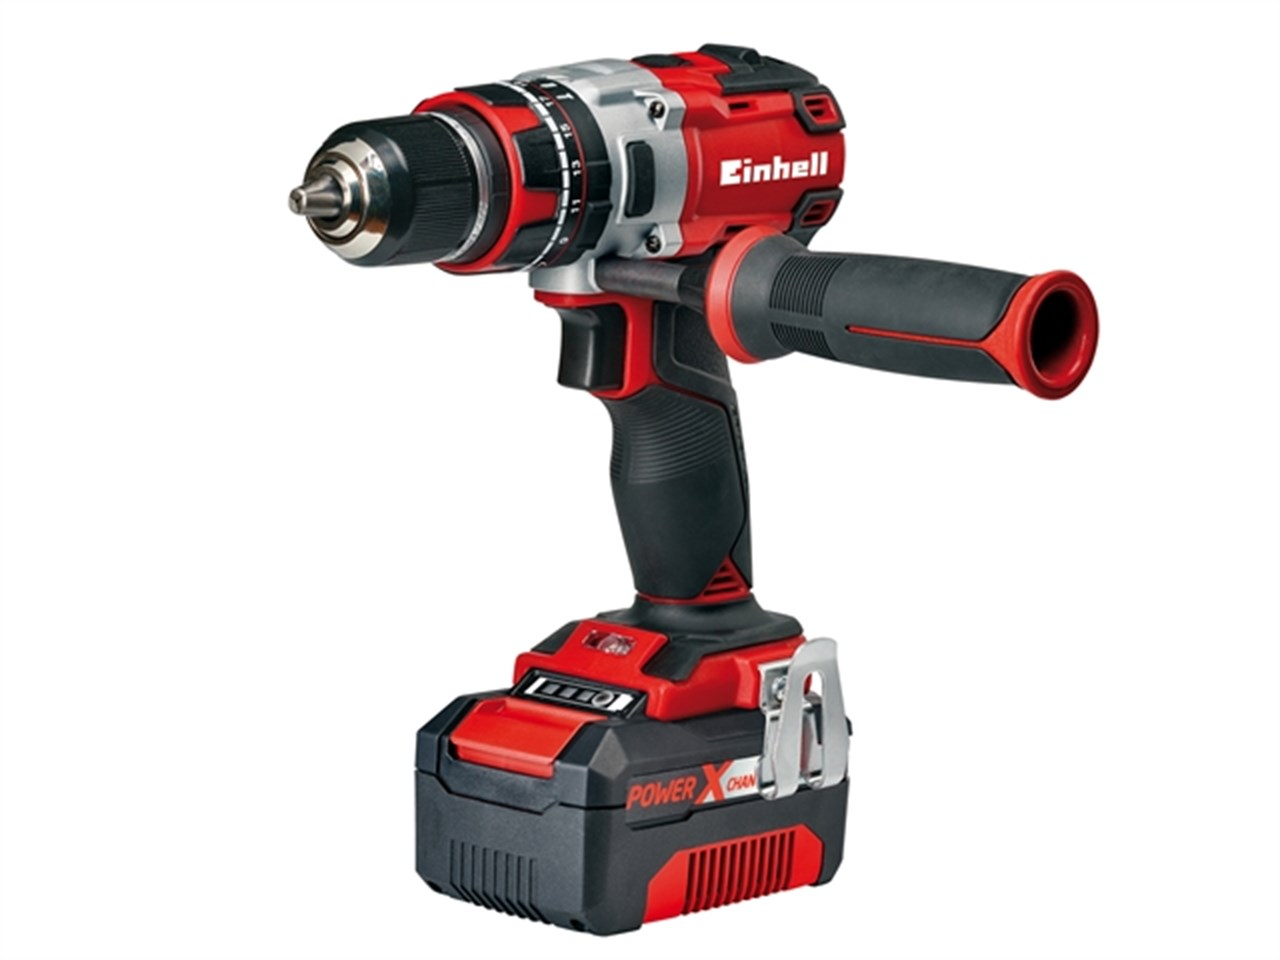 einhell eintecd18bl power x-change brushless hammer drill 18v 1 x